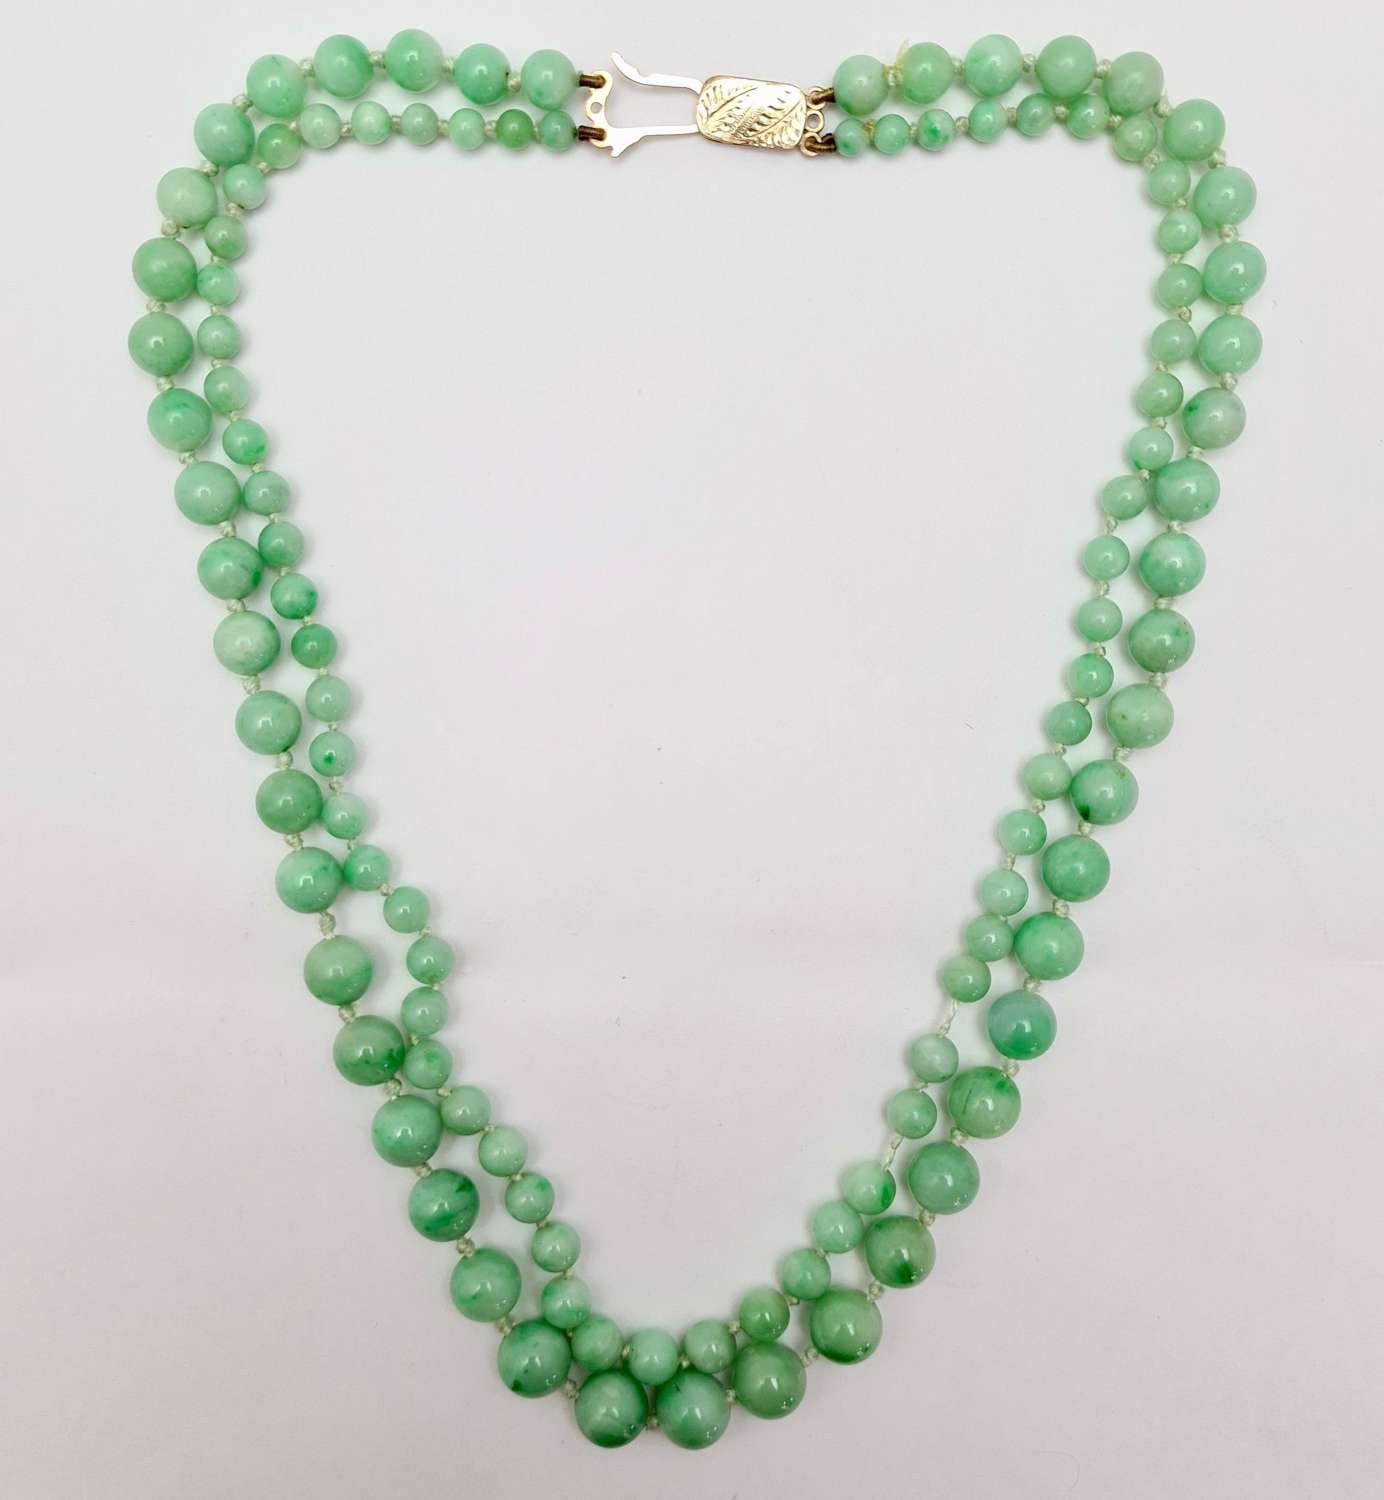 2 Strand Jadeite Bead Necklace